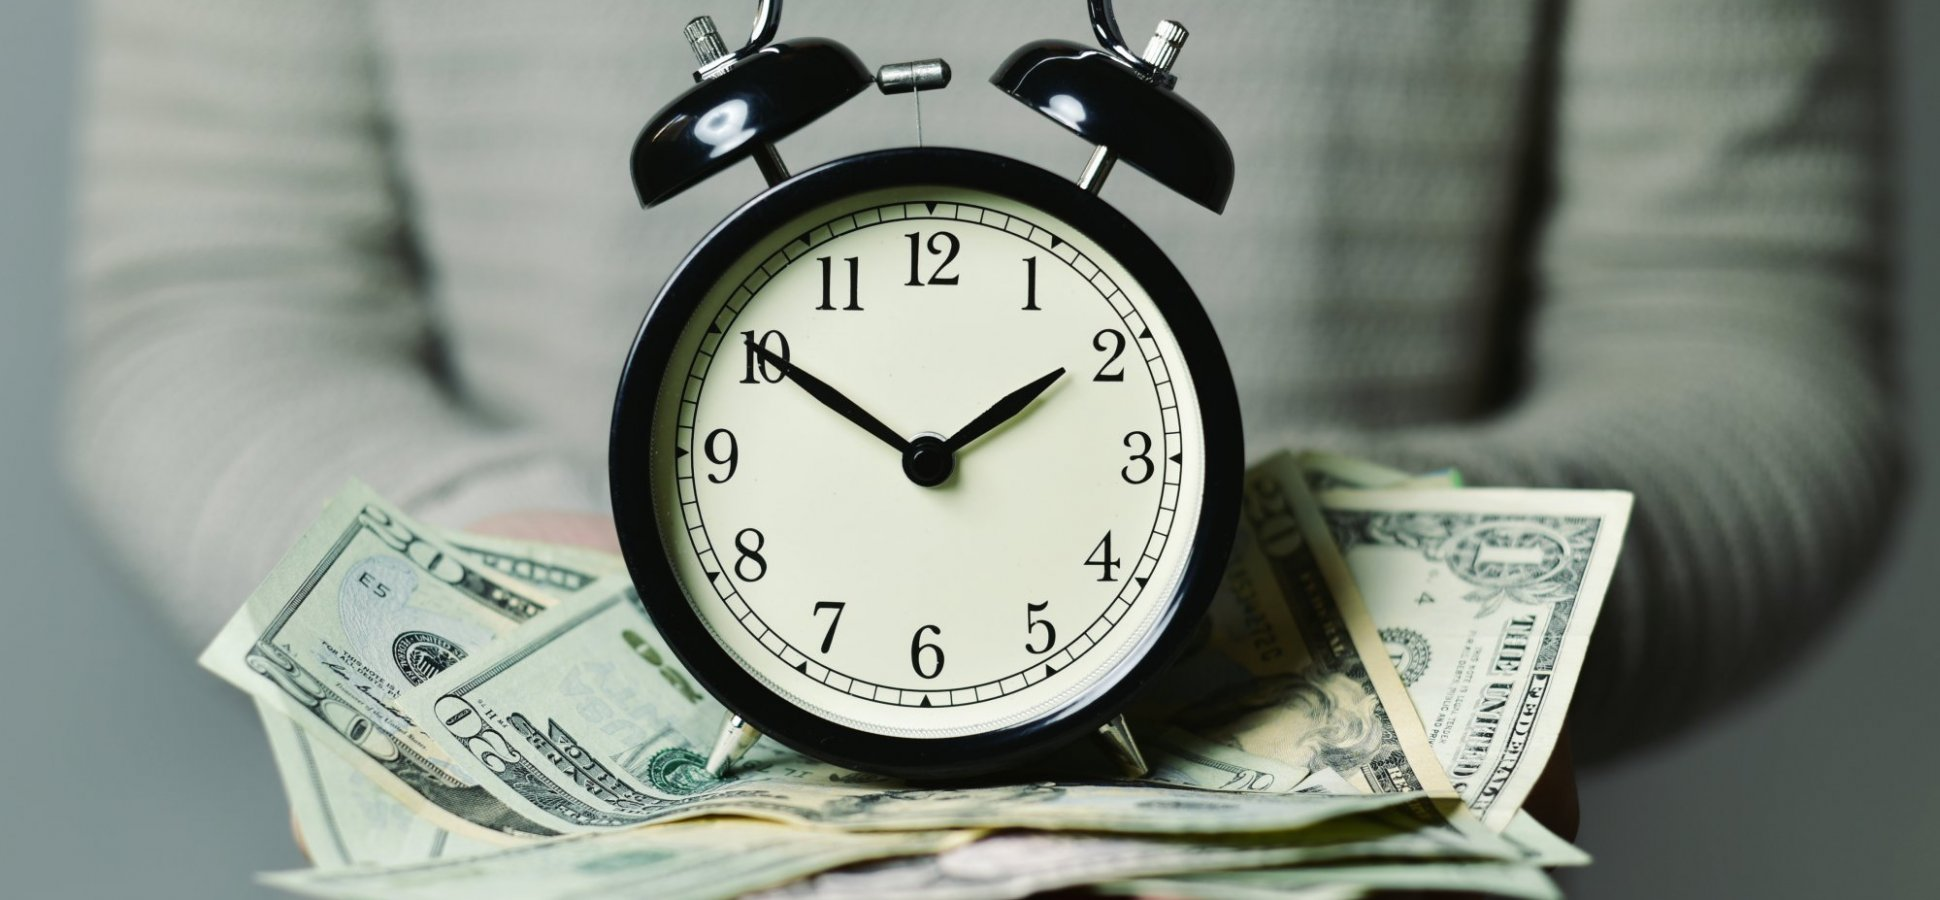 If time is money, where is it going?